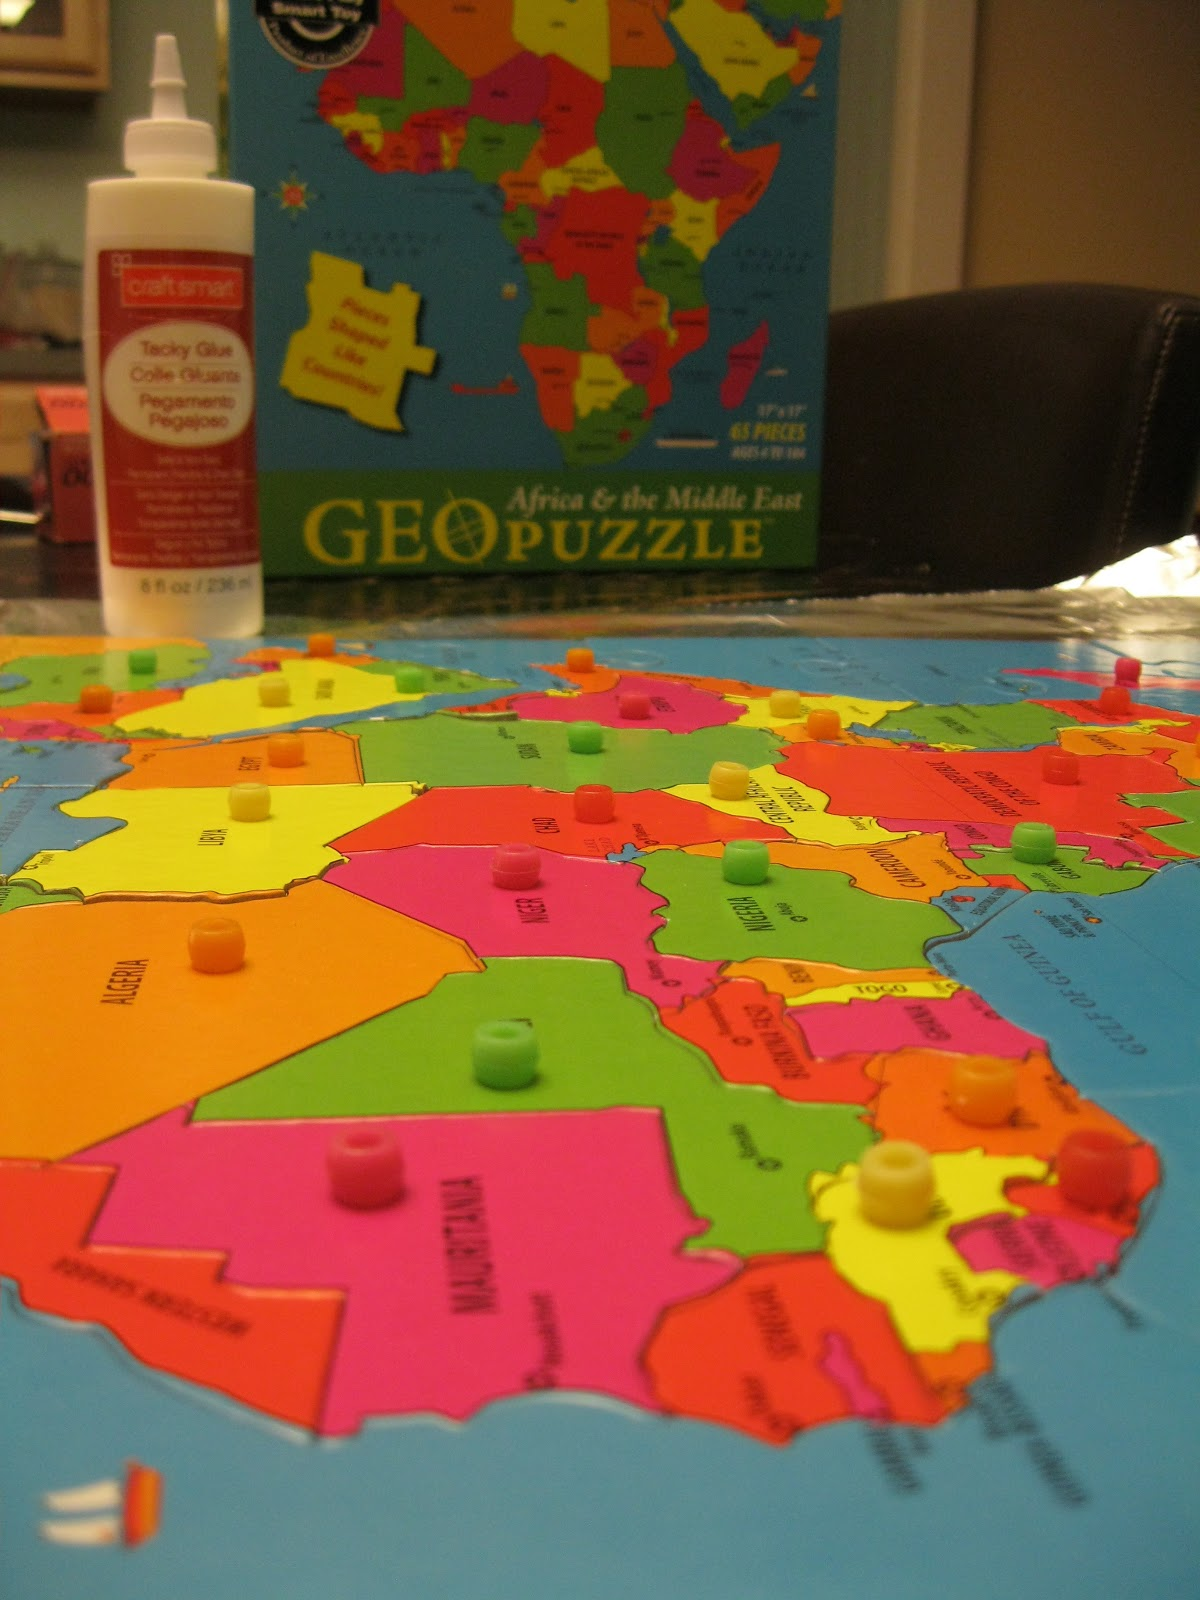 Montessori messy geography on the cheap part 2 making your own knobbed continent map puzzles on foam core gumiabroncs Images